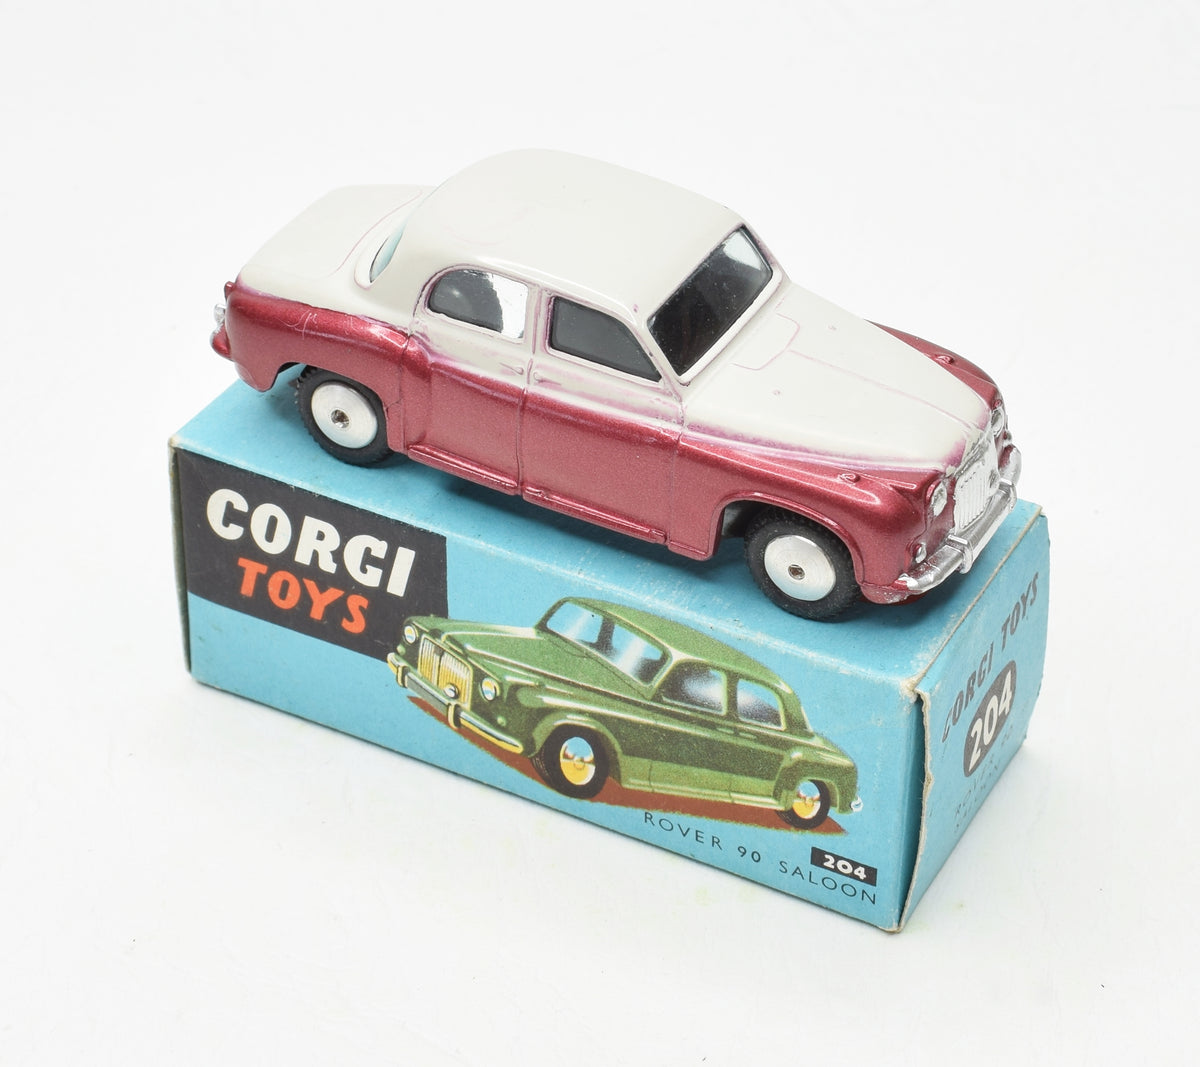 Corgi Toys 204 Rover 90 Very Near Mint/Boxed 'Cotswold' Collection